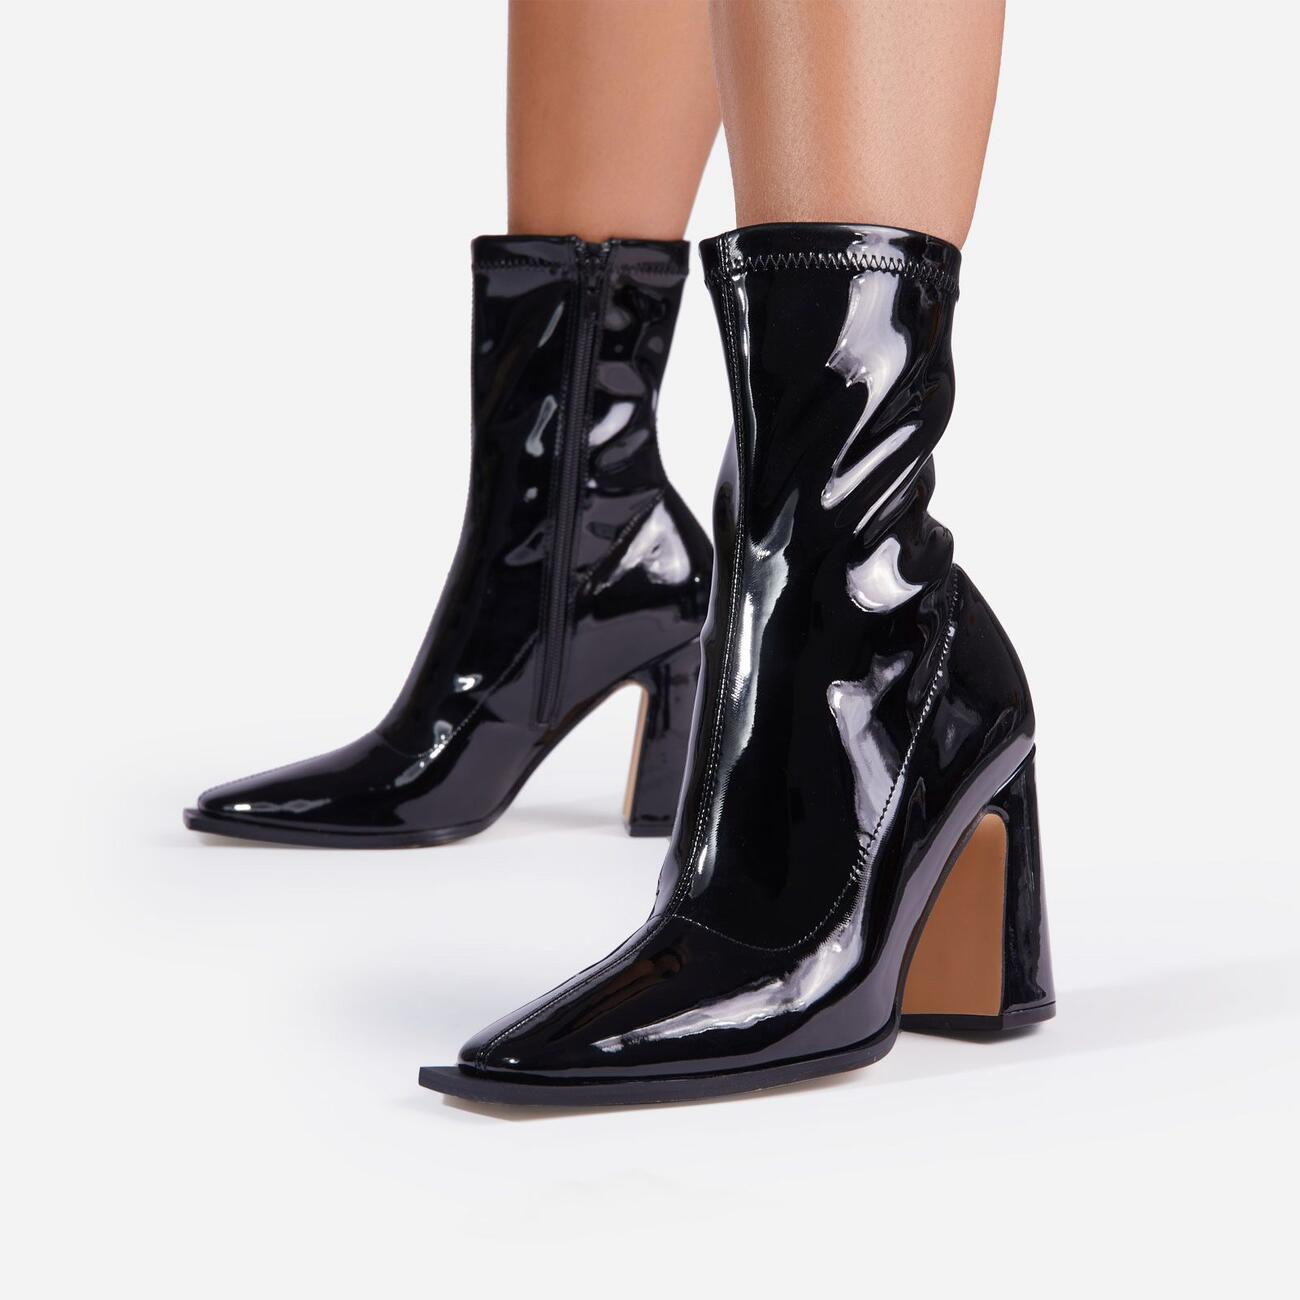 Nessie Flared Block Heel Ankle Sock Boots In Black Patent